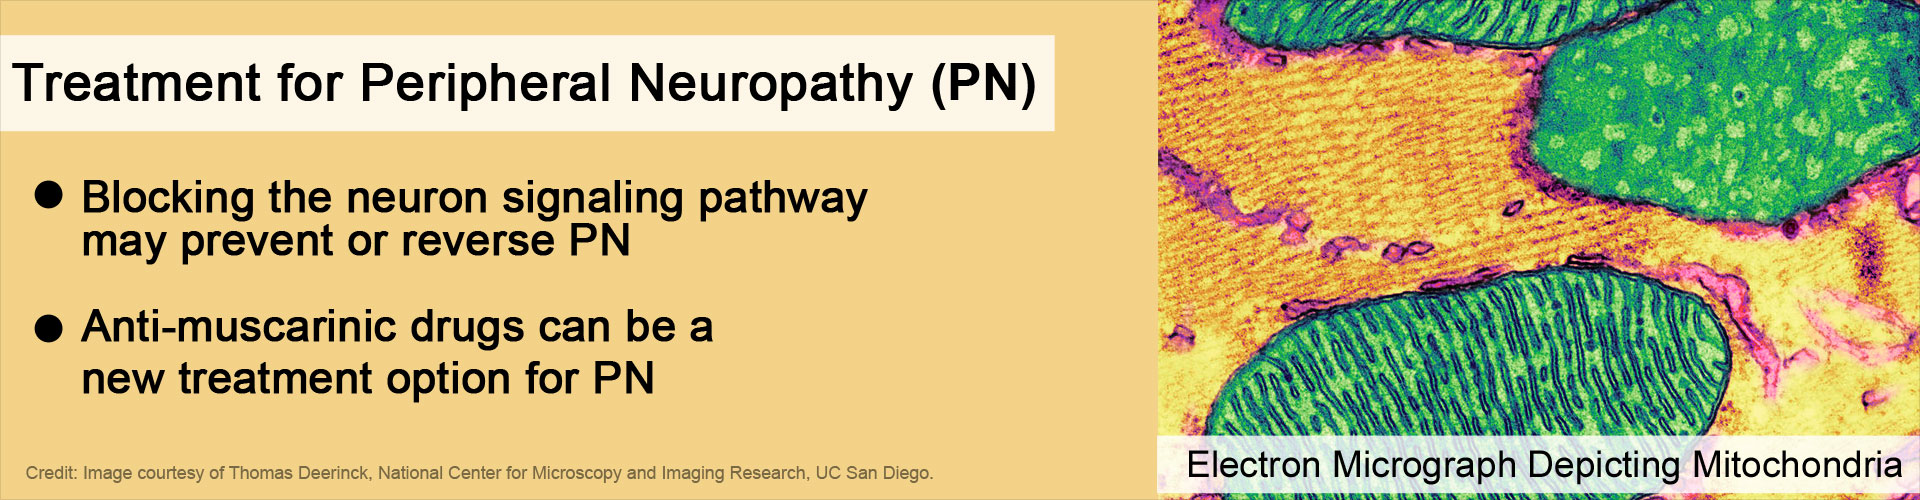 New Treatment For Peripheral Neuropathy